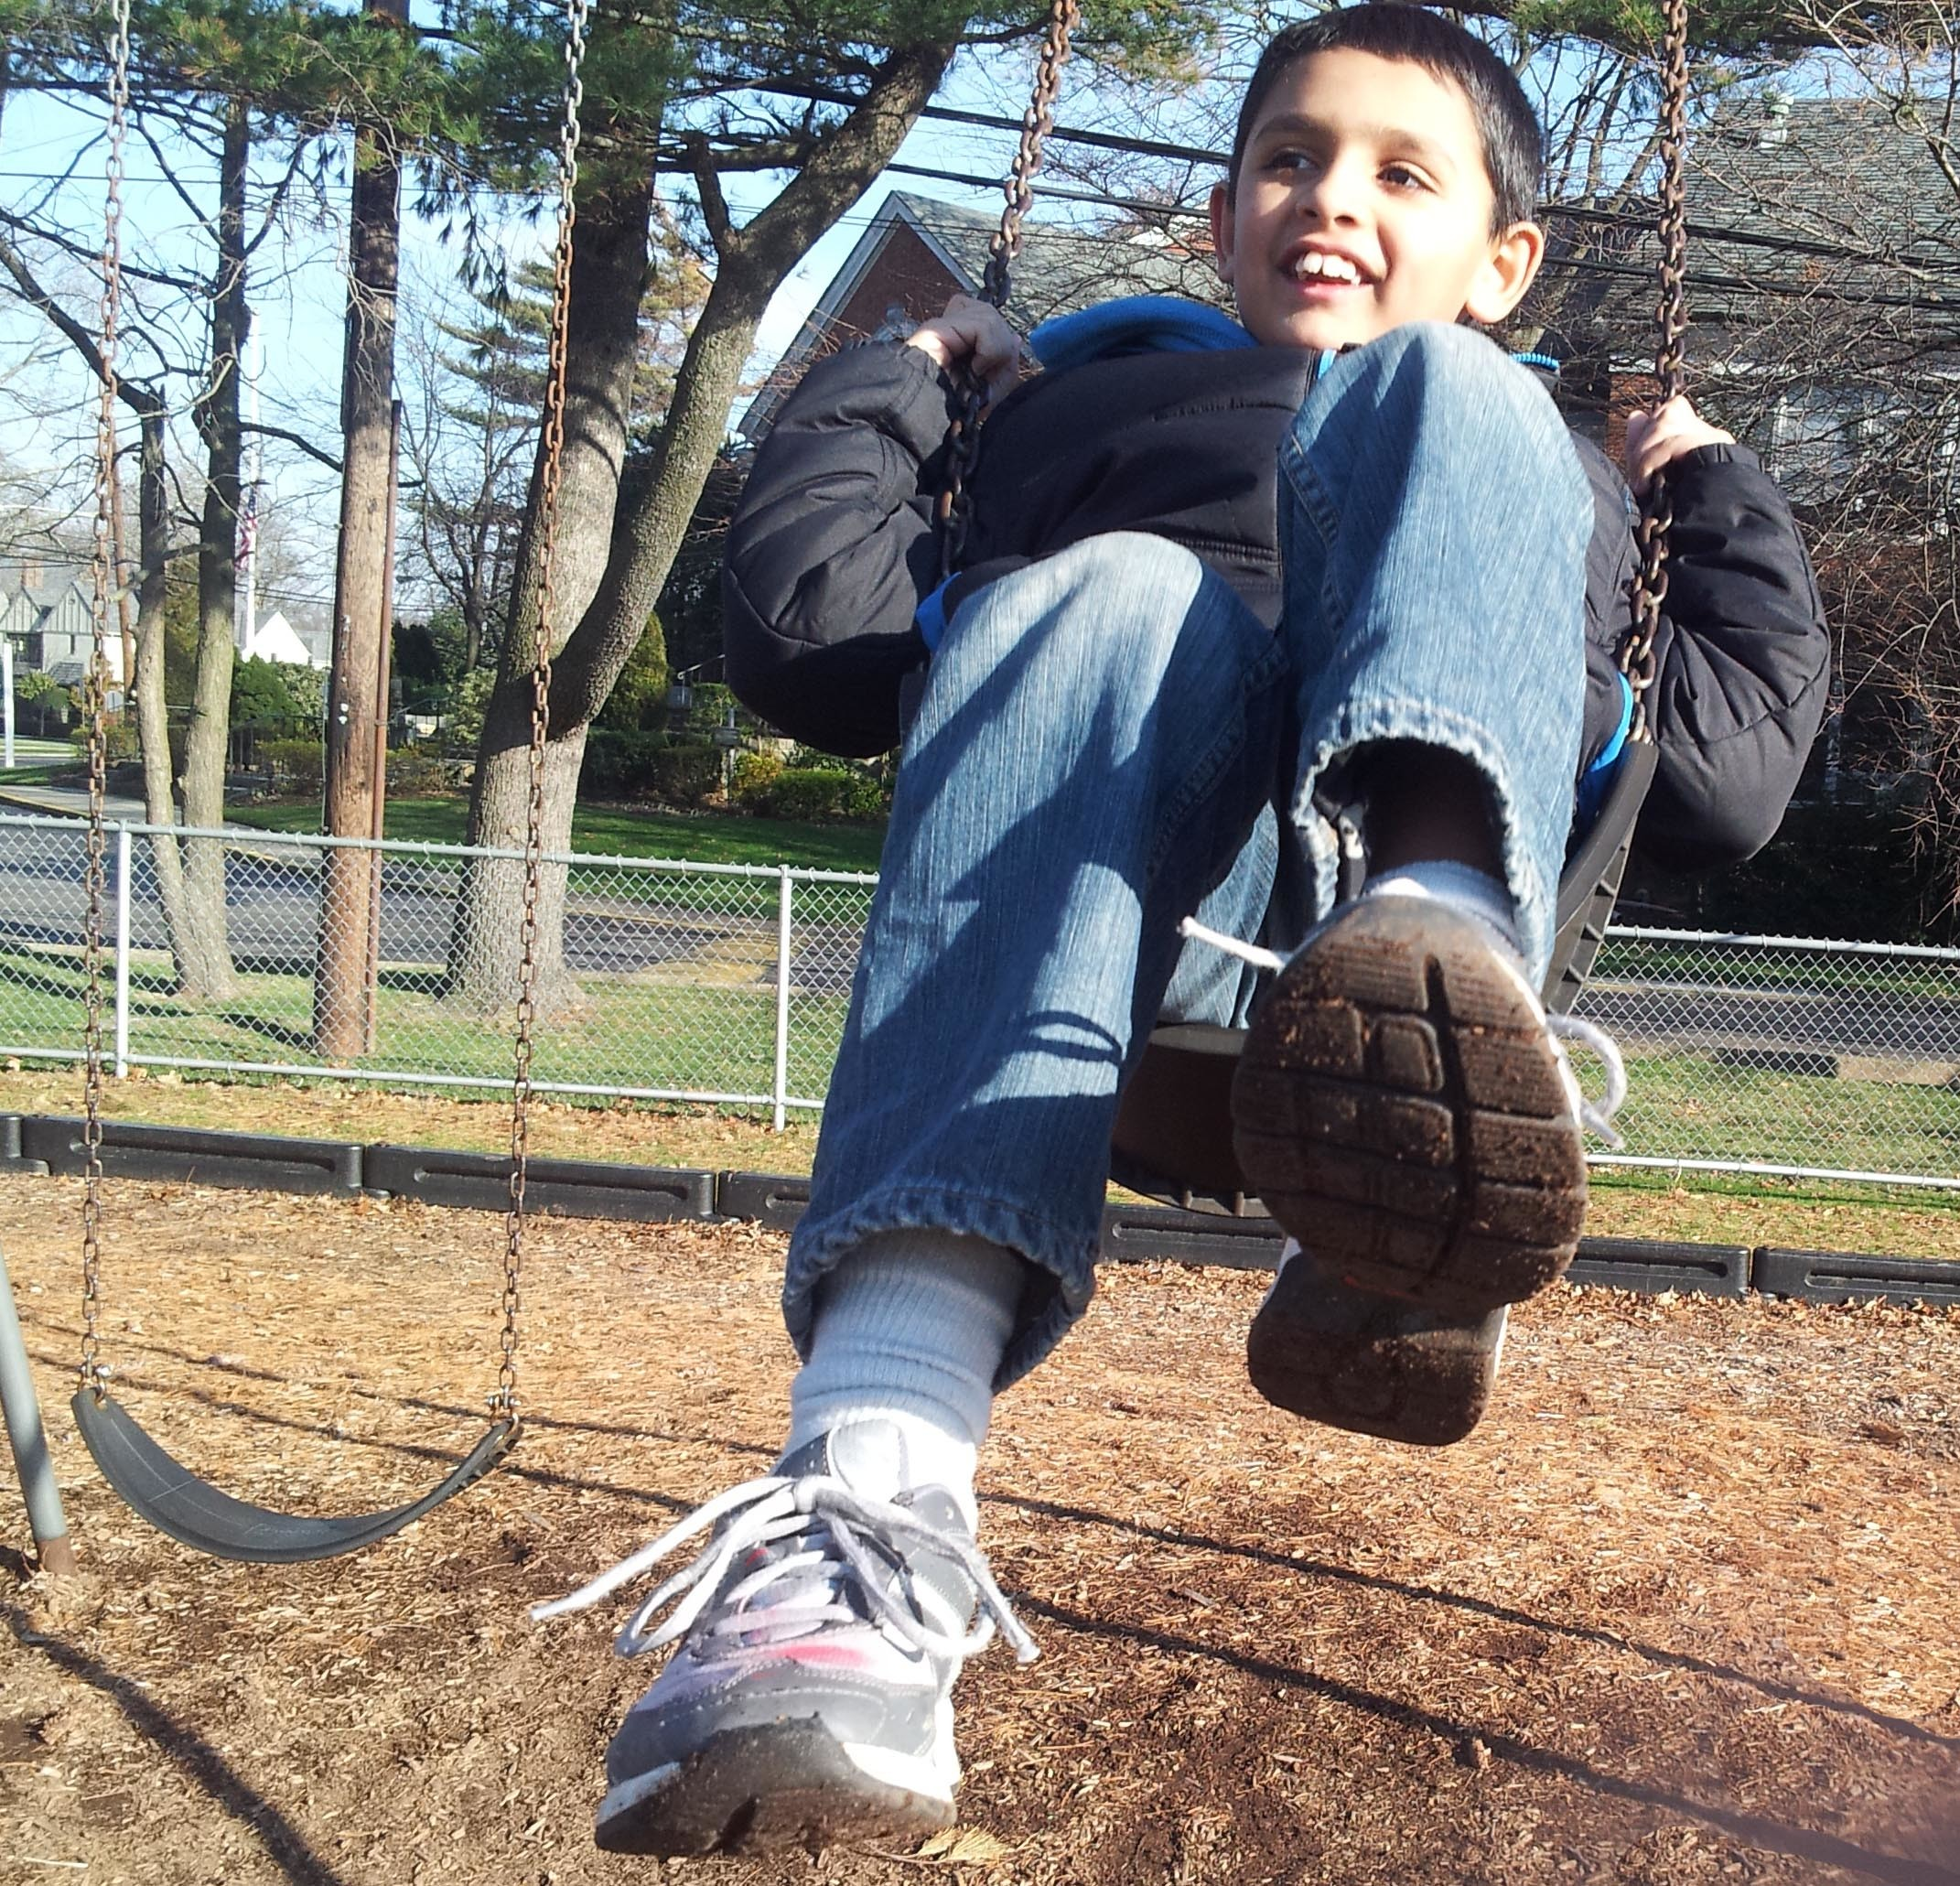 After Debbie Stone noticed that her son Dylan would not go near the new swing set she bought, she discovered a form of therapy that quickly helped him become familiar with the swings.